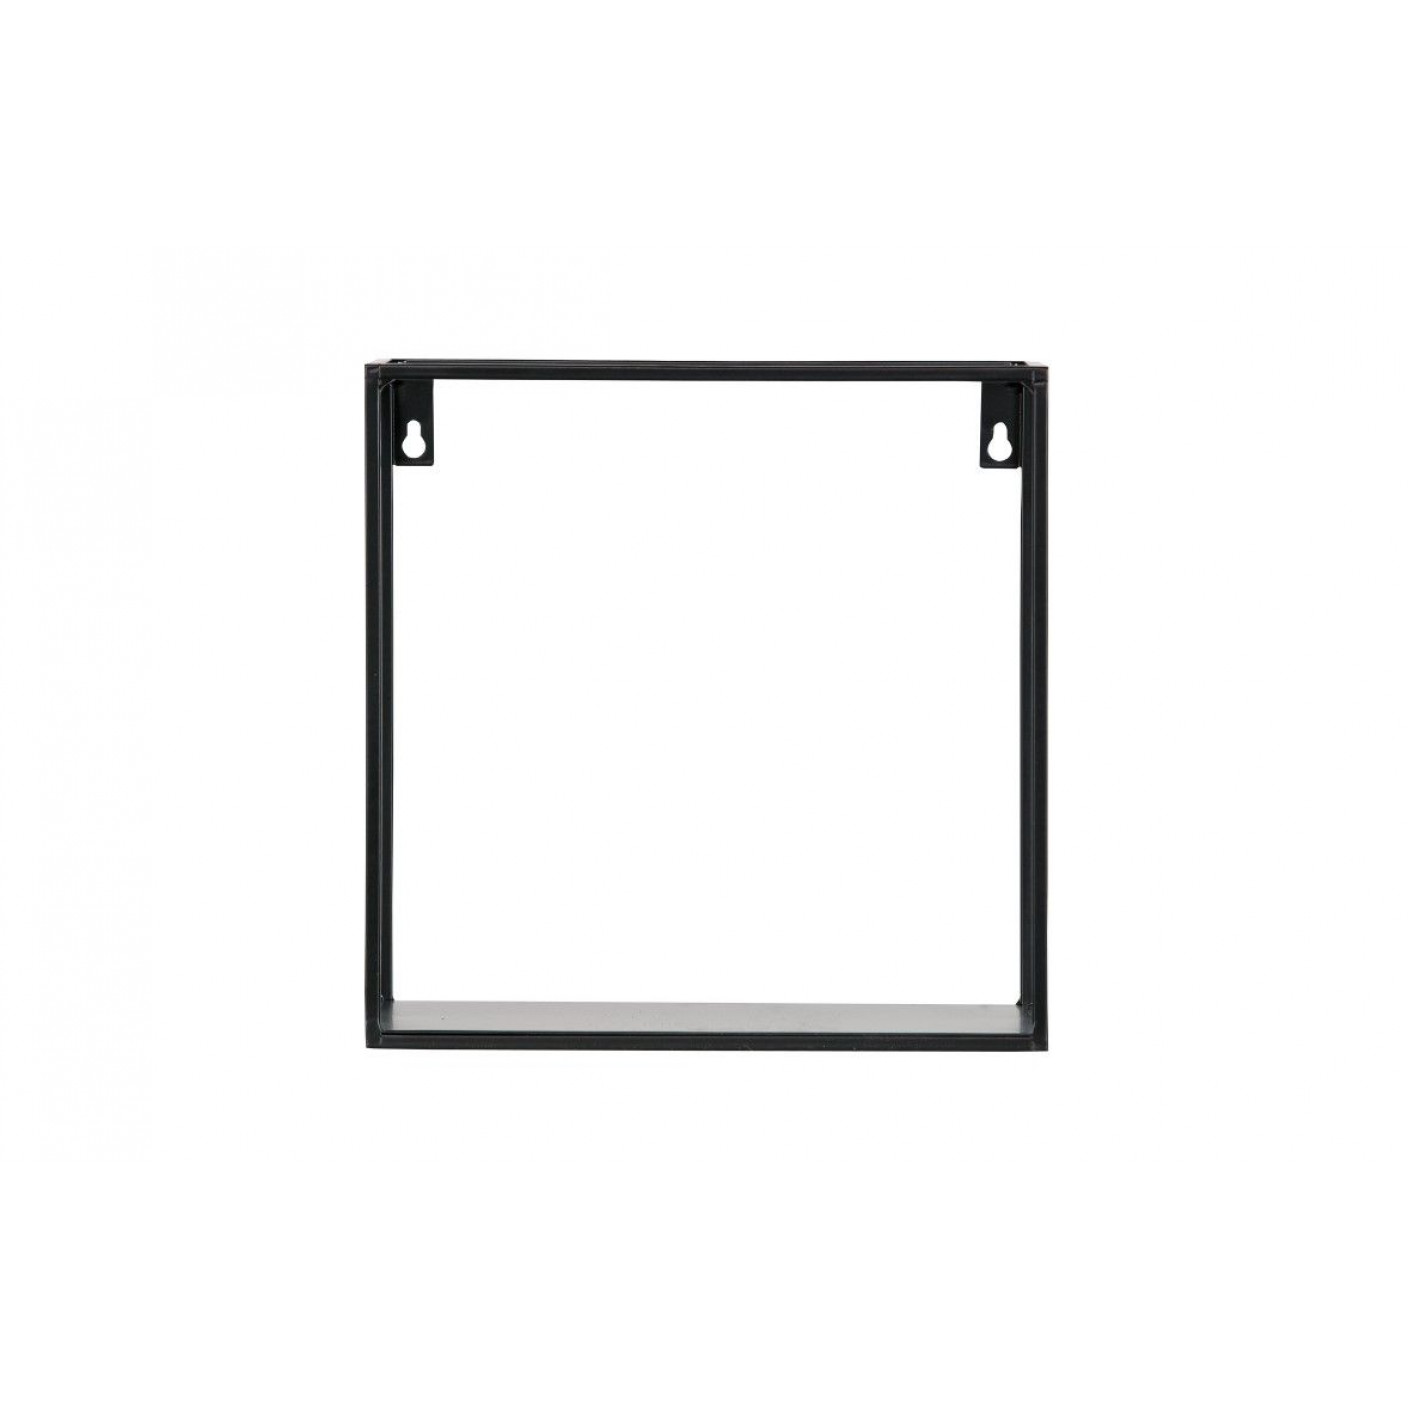 Set of 2 Wall Shelves Meert | Small Square